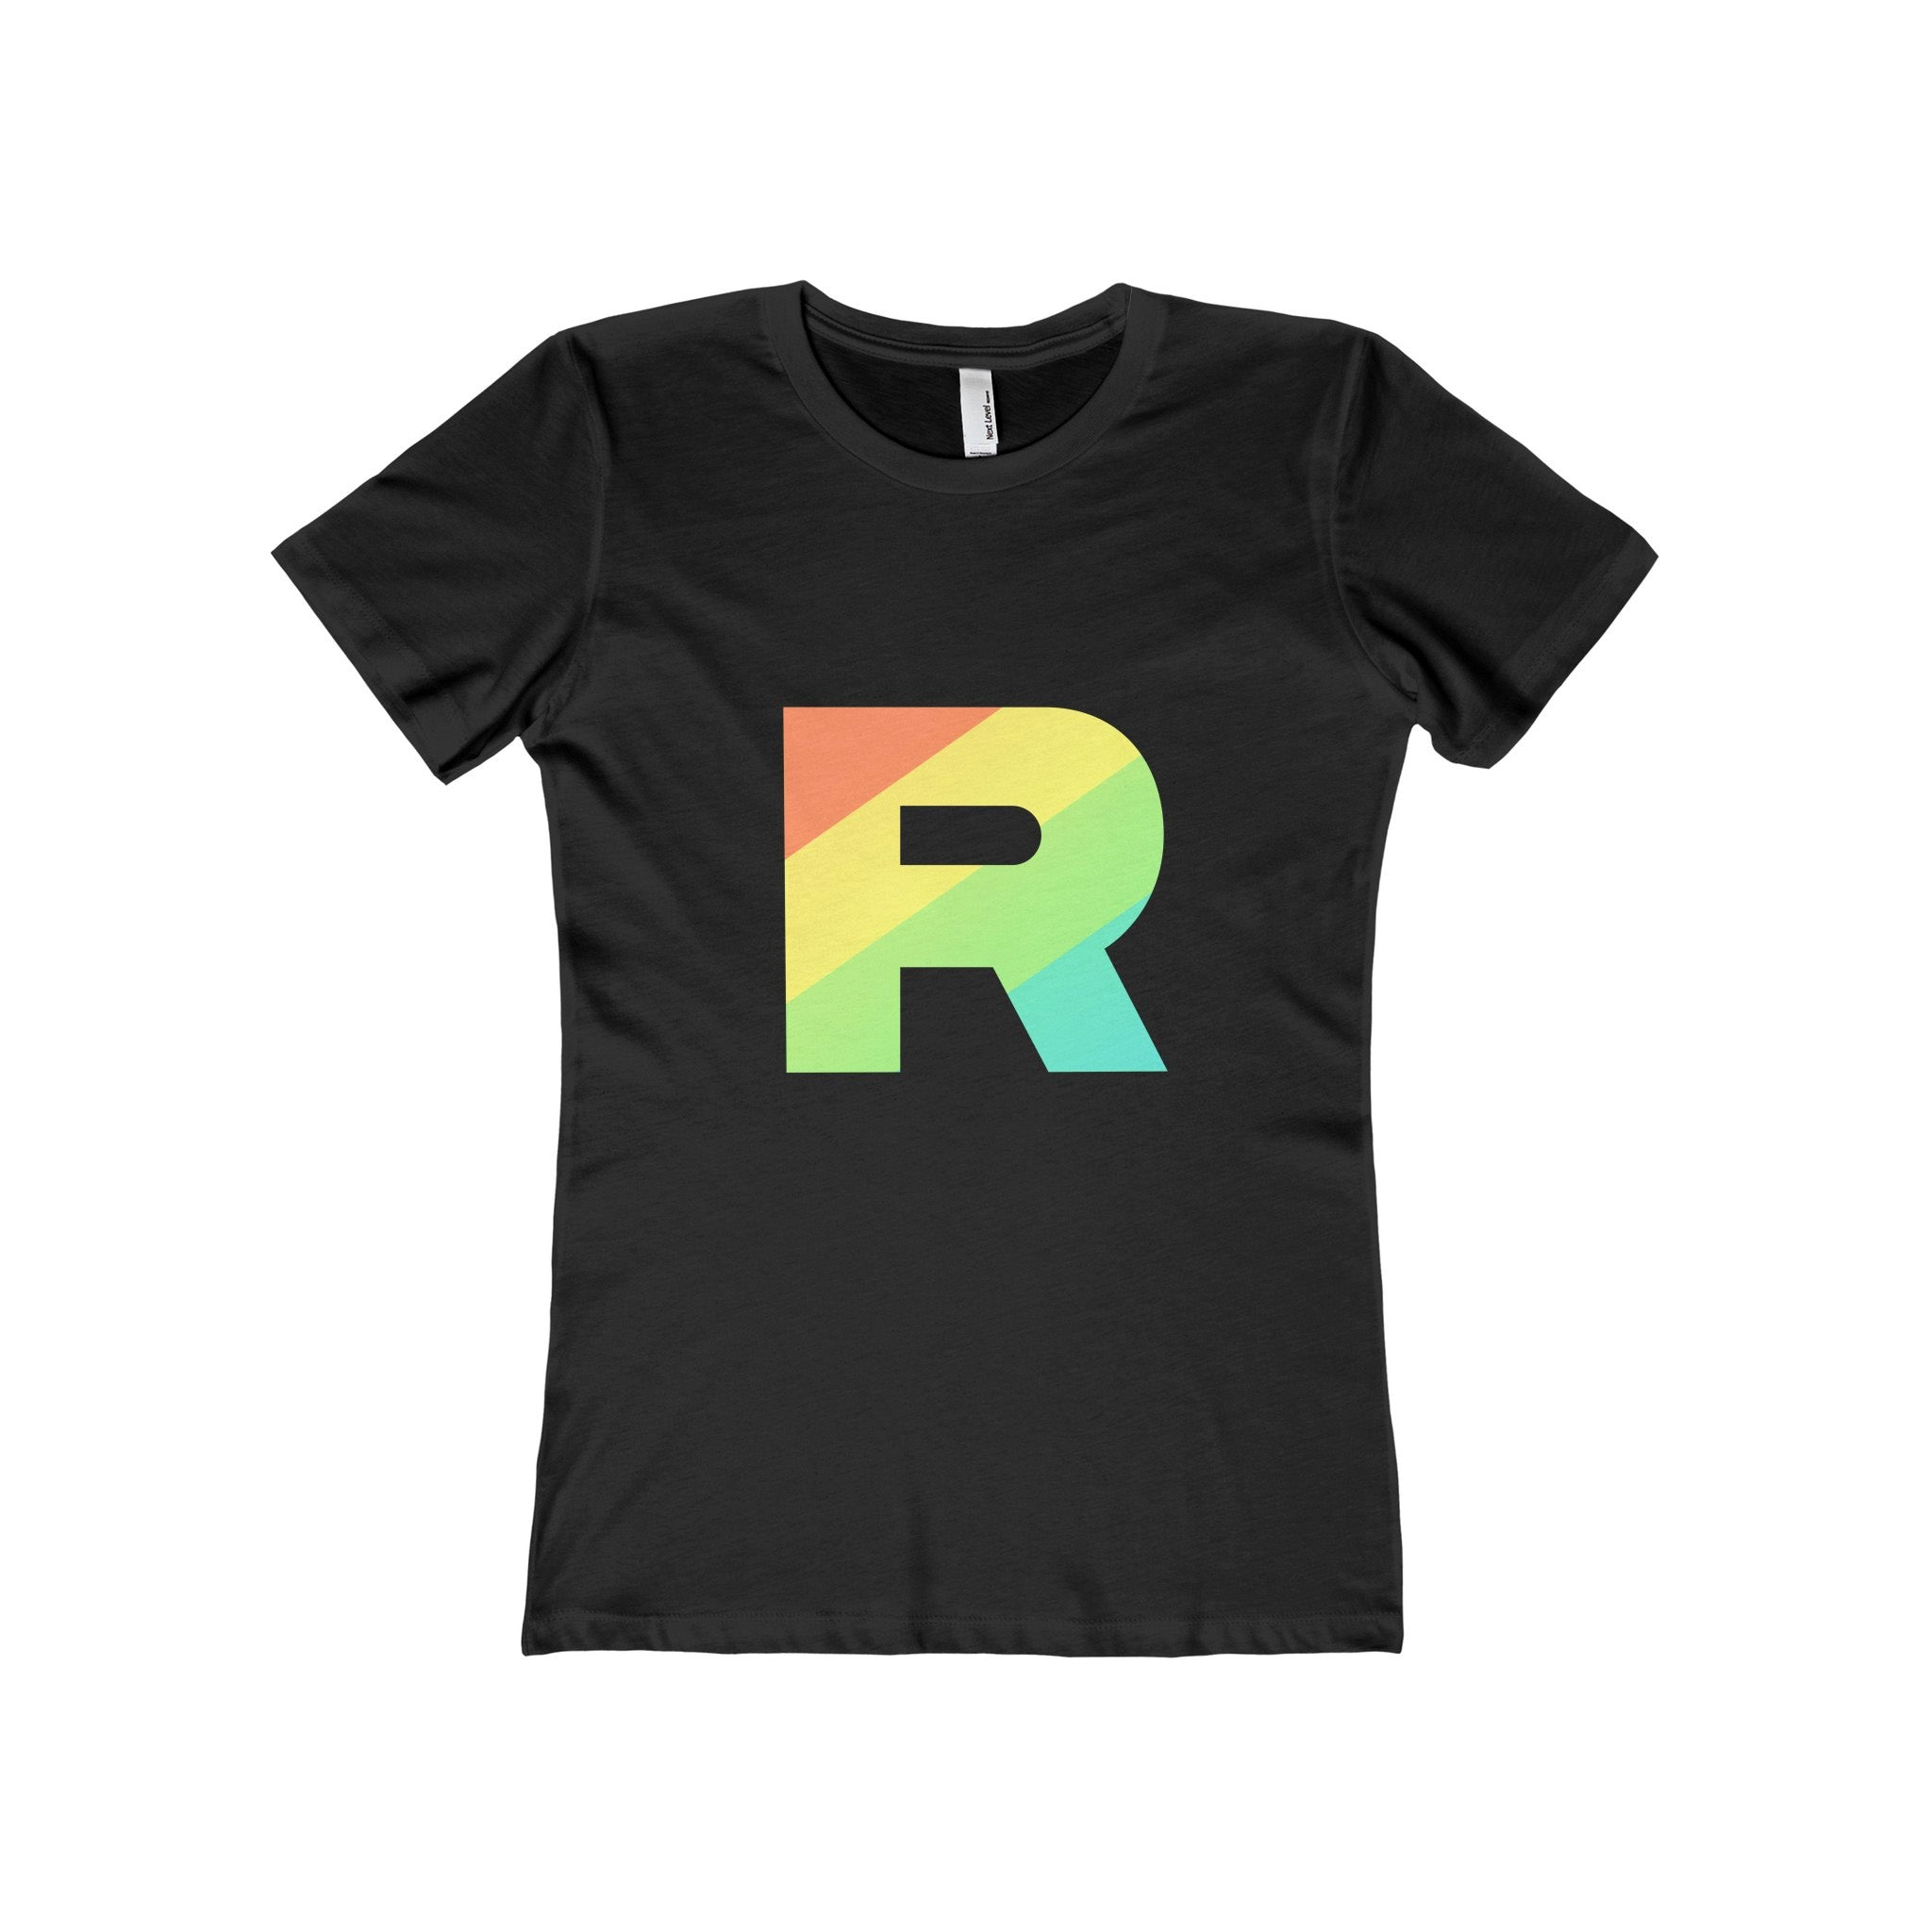 e28c7ebd PKMN Women's Fitted Team Rainbow Rocket T-Shirt. Team Rainbow Rocket  pokemon shirt